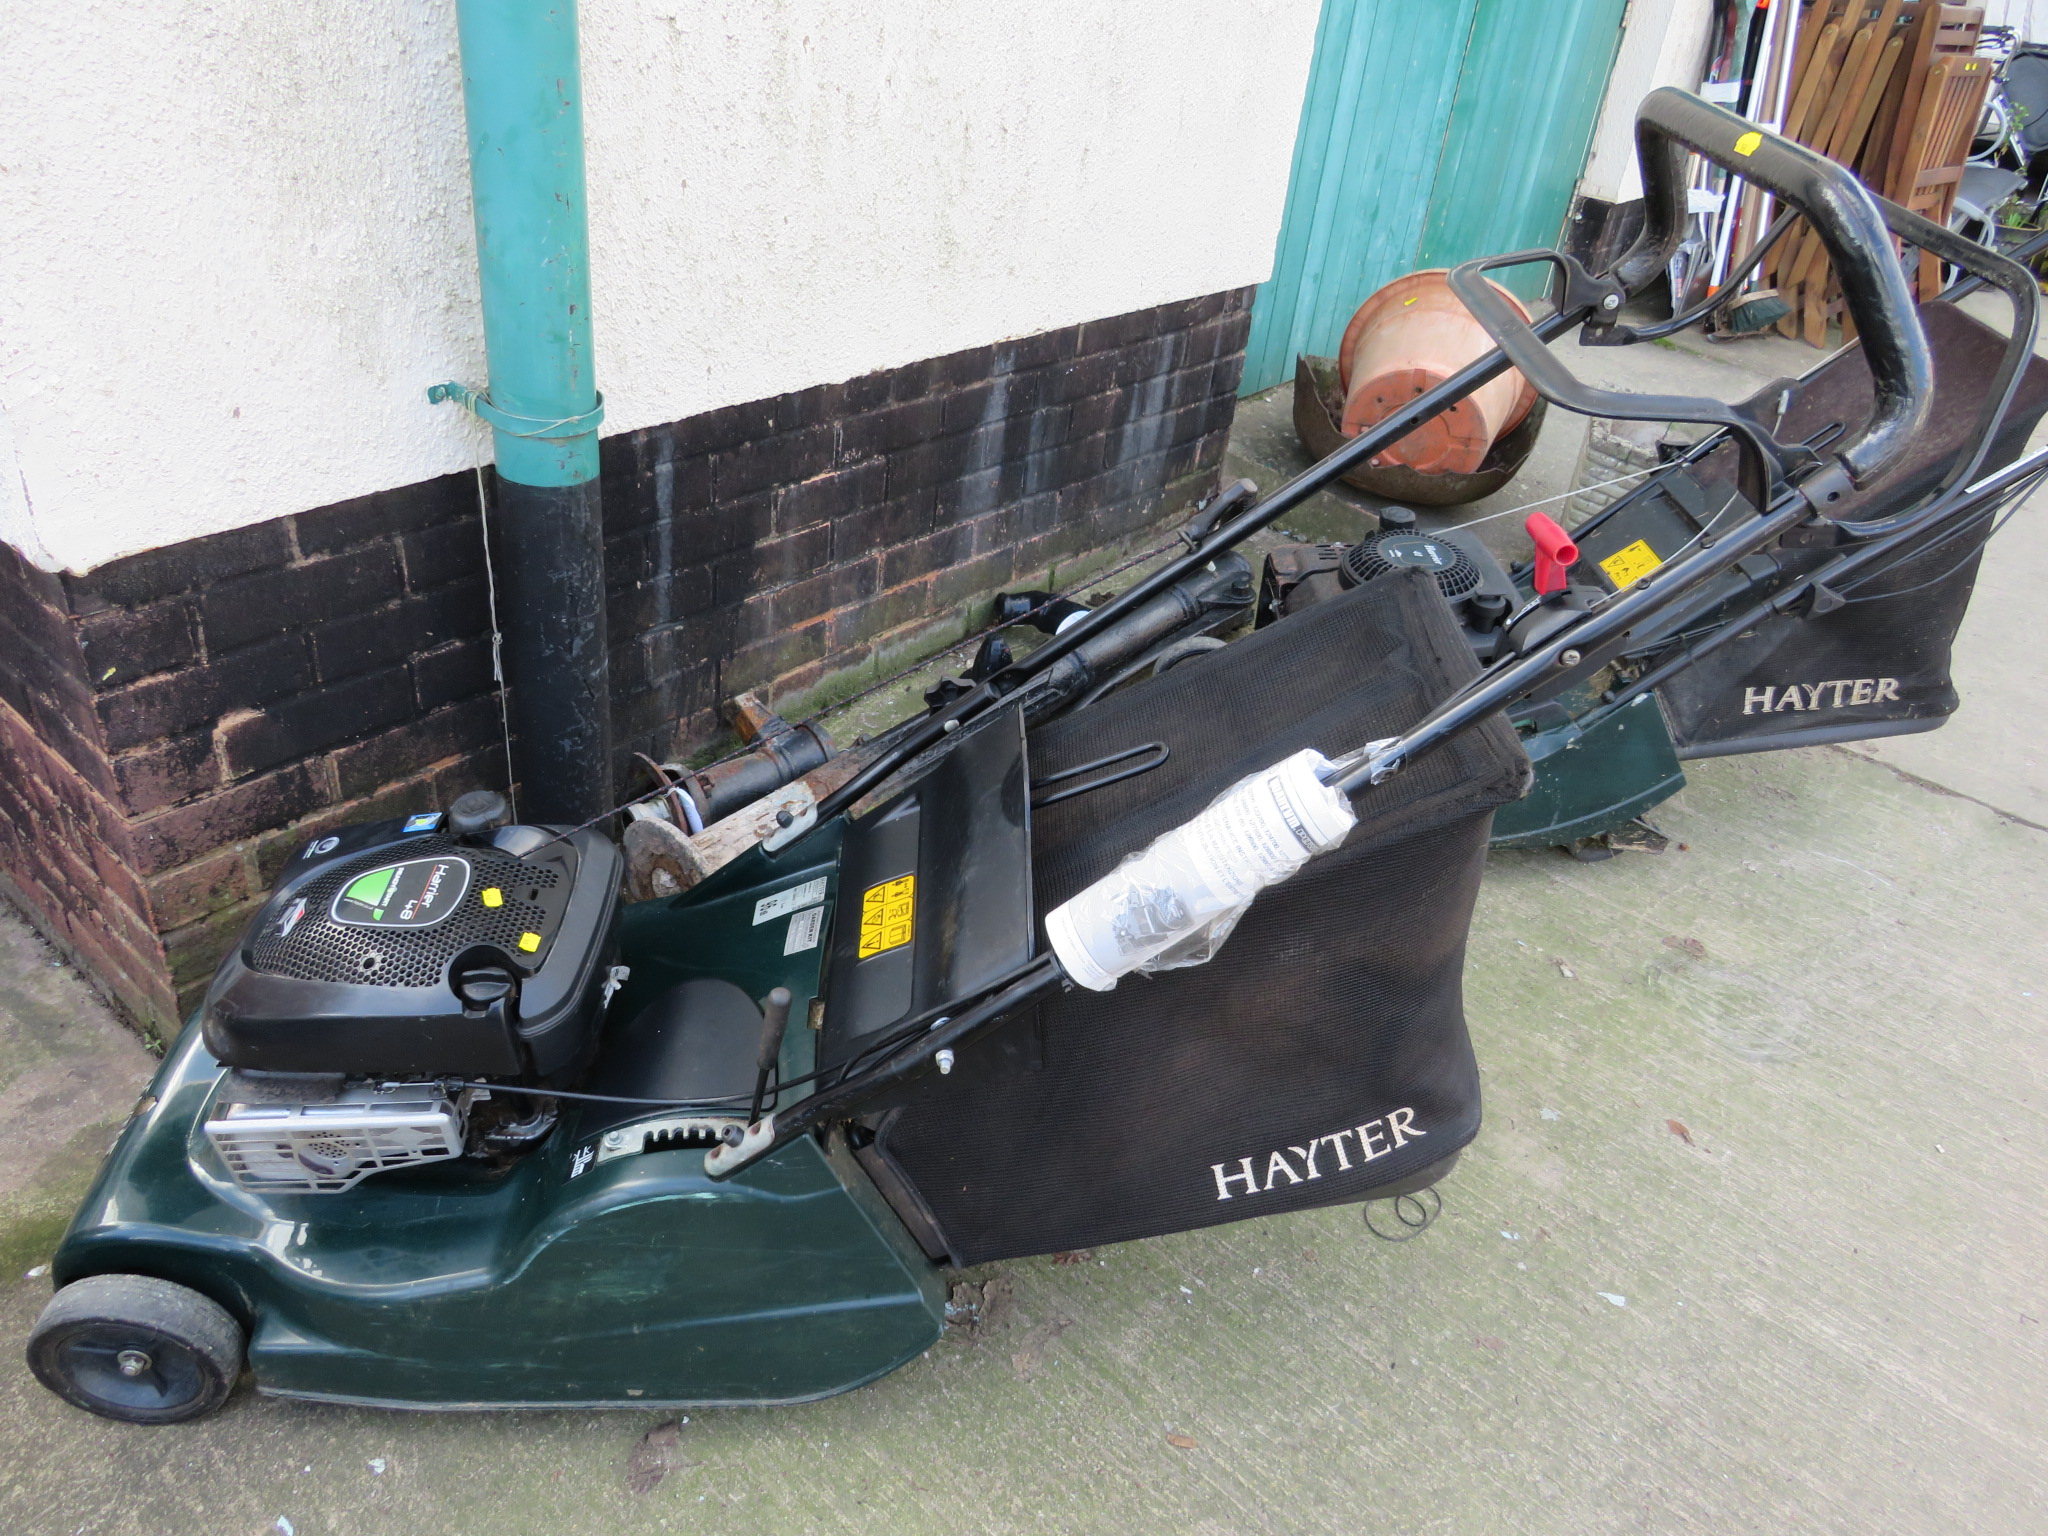 Lot 35 - HAYTER HARRIER 48 LAWNMOWER WITH BRIGGS AND STRATTON READY START PETROL ENGINE